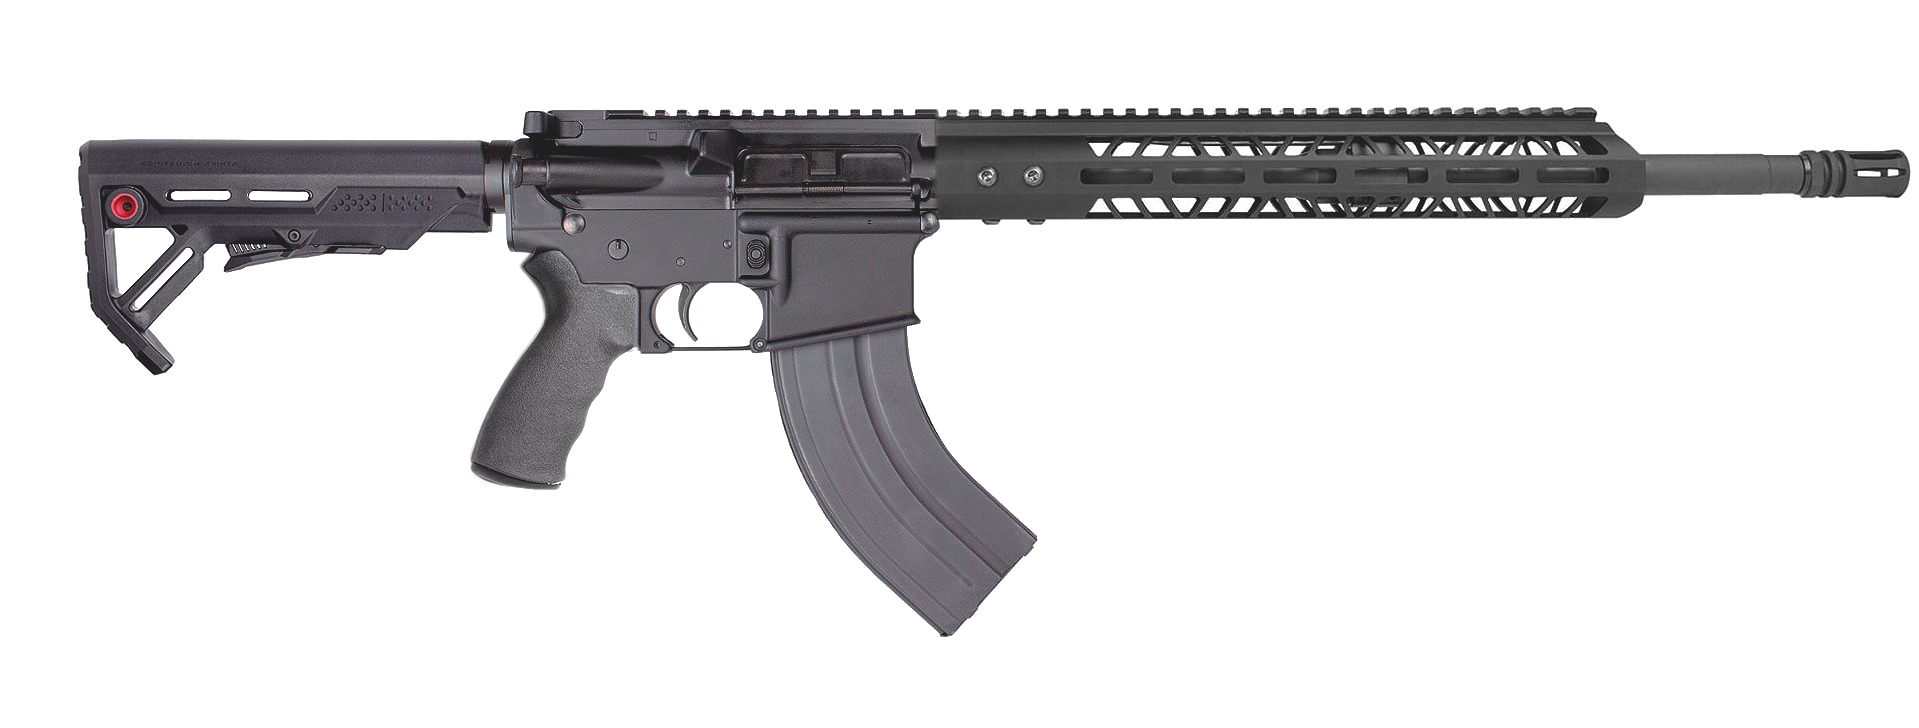 *ARK-16 shown with optional Viper Mod-1 Stock, Ergo soft-grip, MLOK rail forend and heavy barrel.